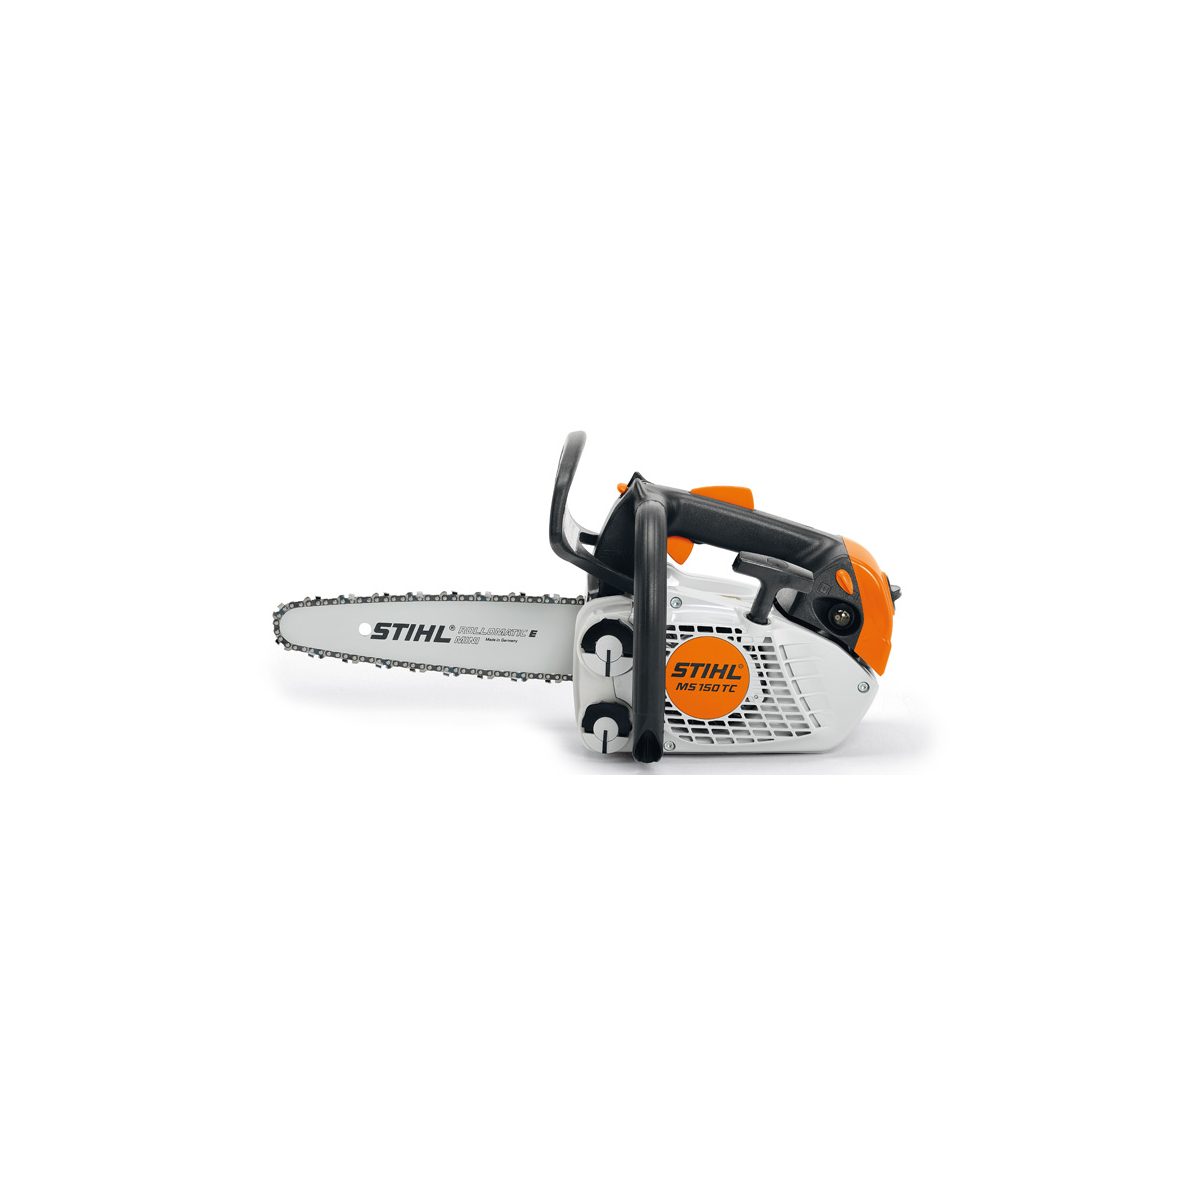 achat tronconneuse stihl ms 150 tce stihl bender motoculture. Black Bedroom Furniture Sets. Home Design Ideas